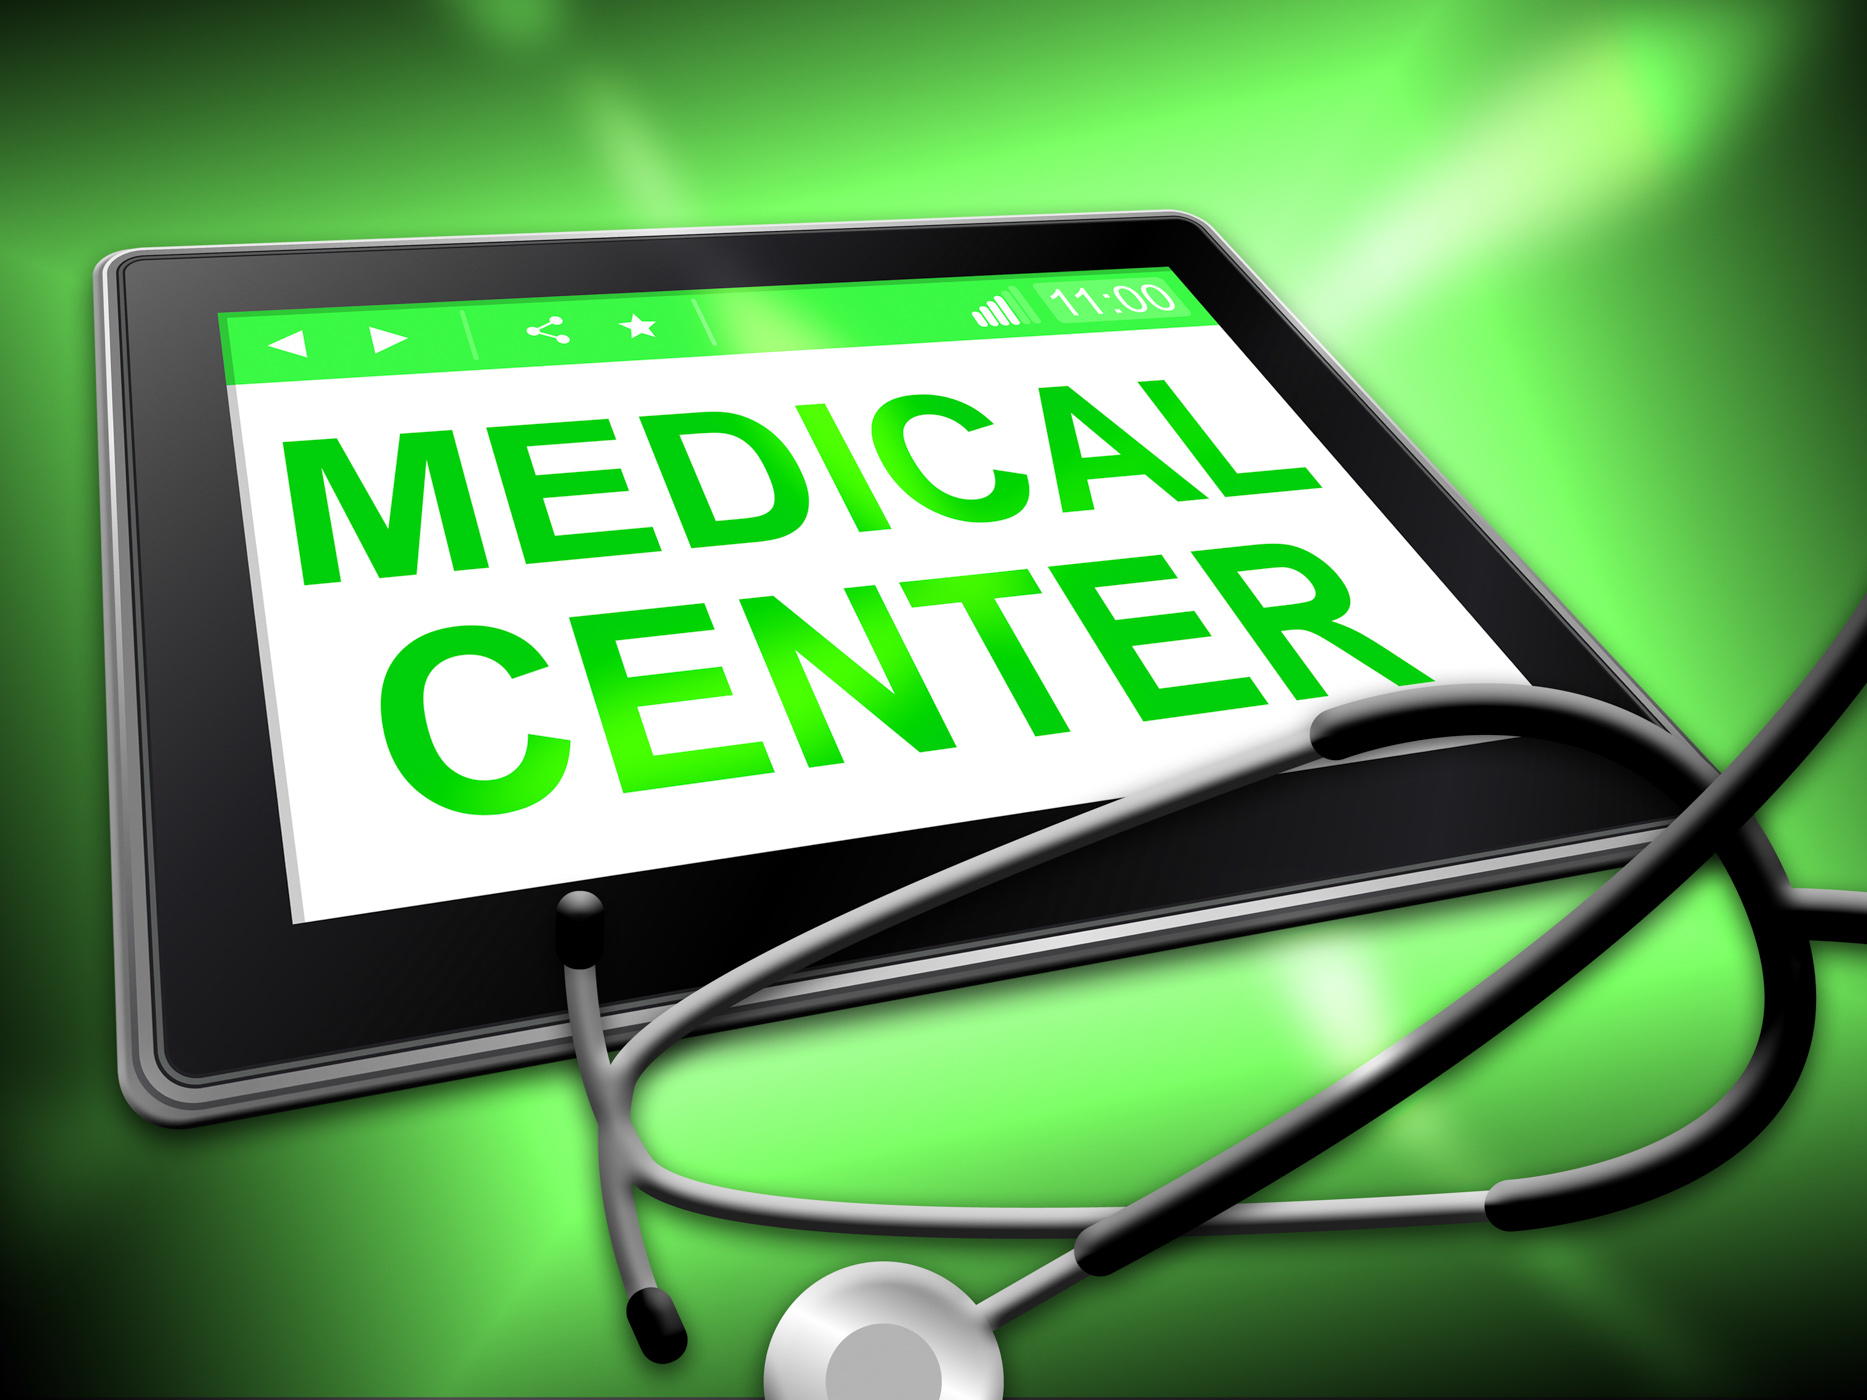 Medical Center Represents Internet Hospital And Clinics, Care, Office, Web, Treatment, HQ Photo